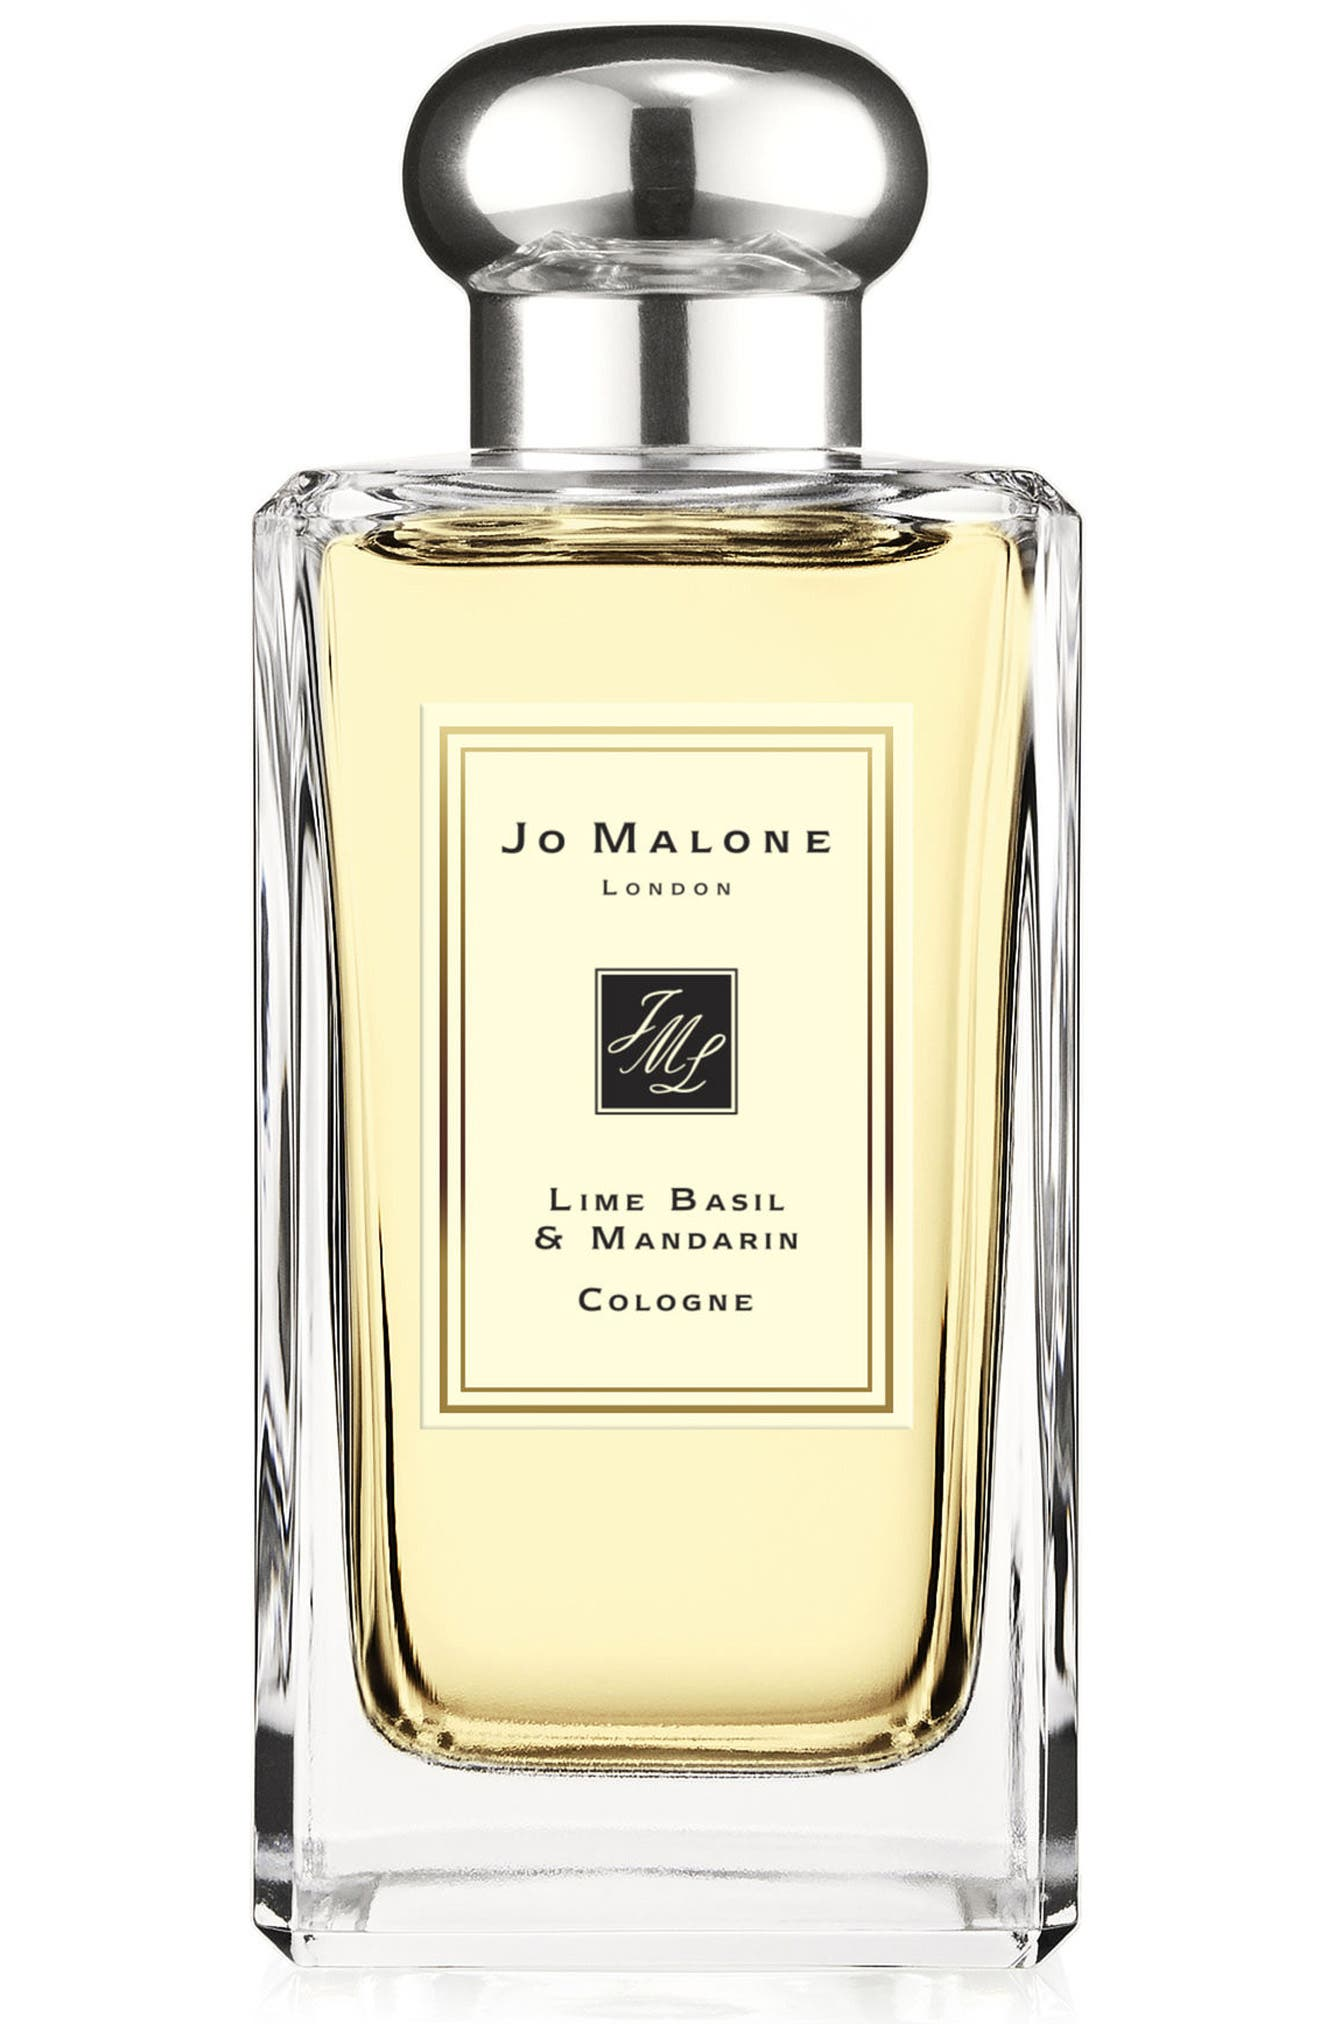 Jo Malone London™ 'Lime Basil & Mandarin' Cologne (3.4 oz.)